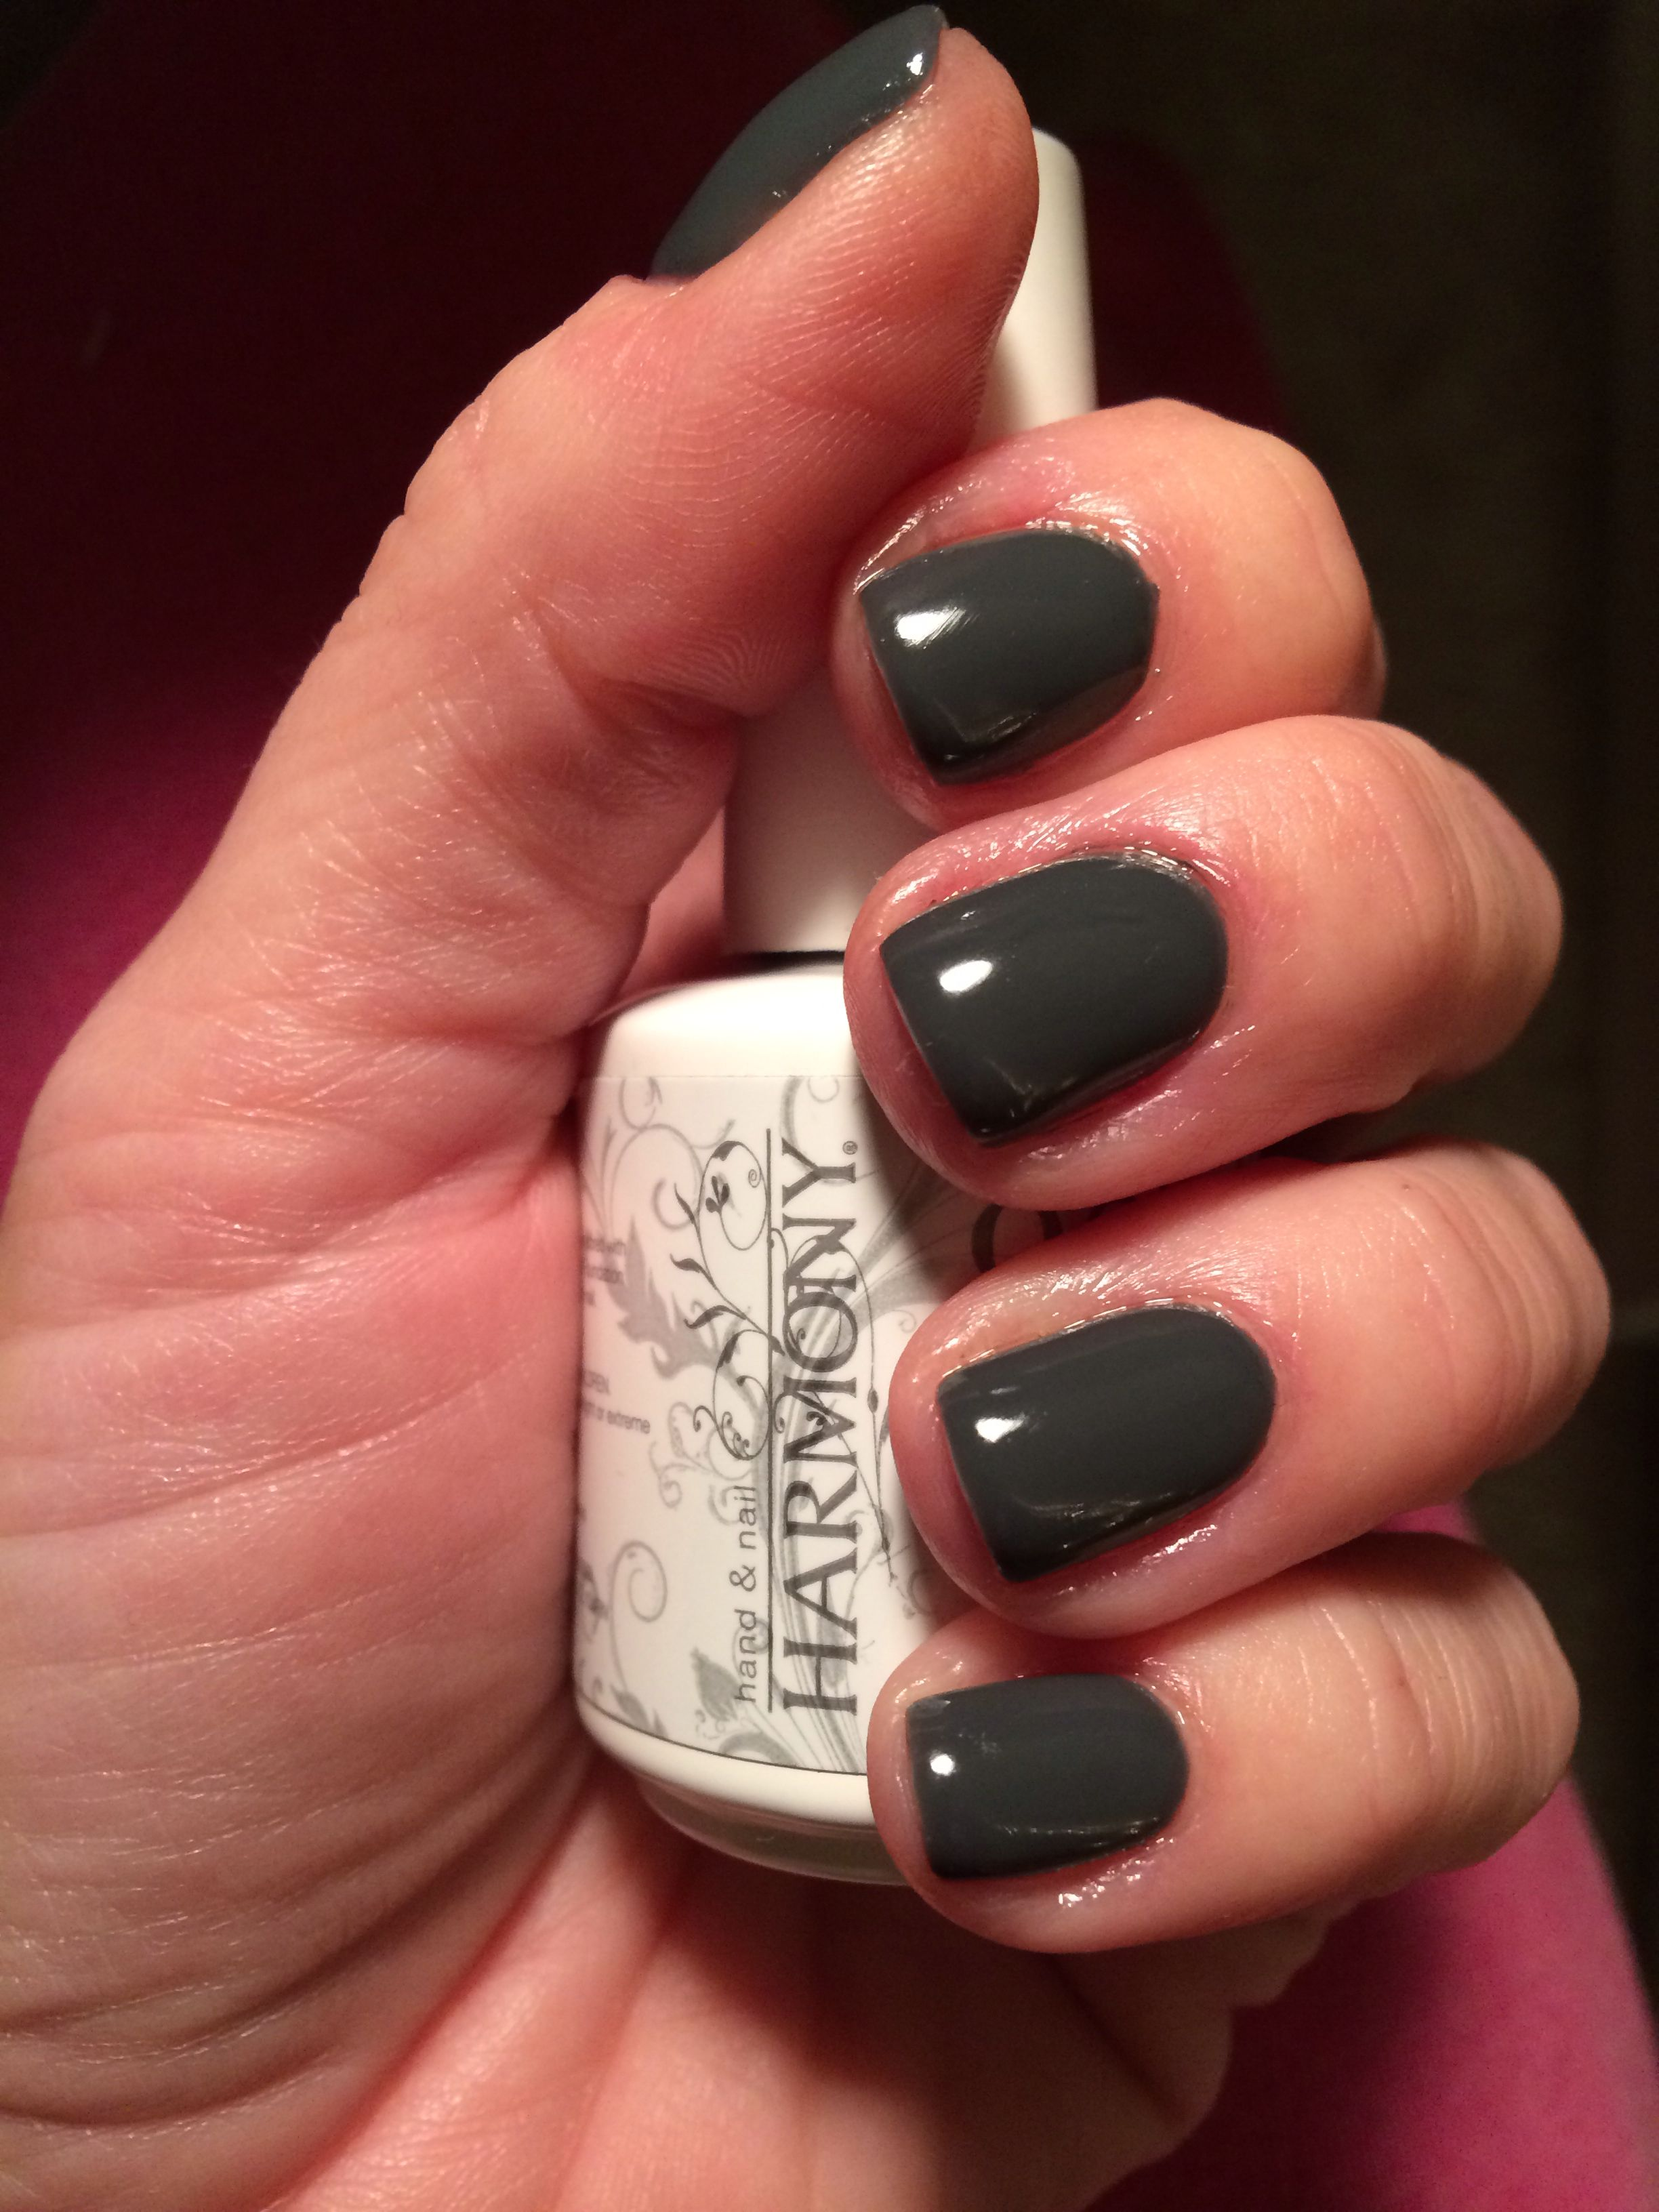 Gelish, fashion week chic. A chic, cool grey perfect for the fall ...